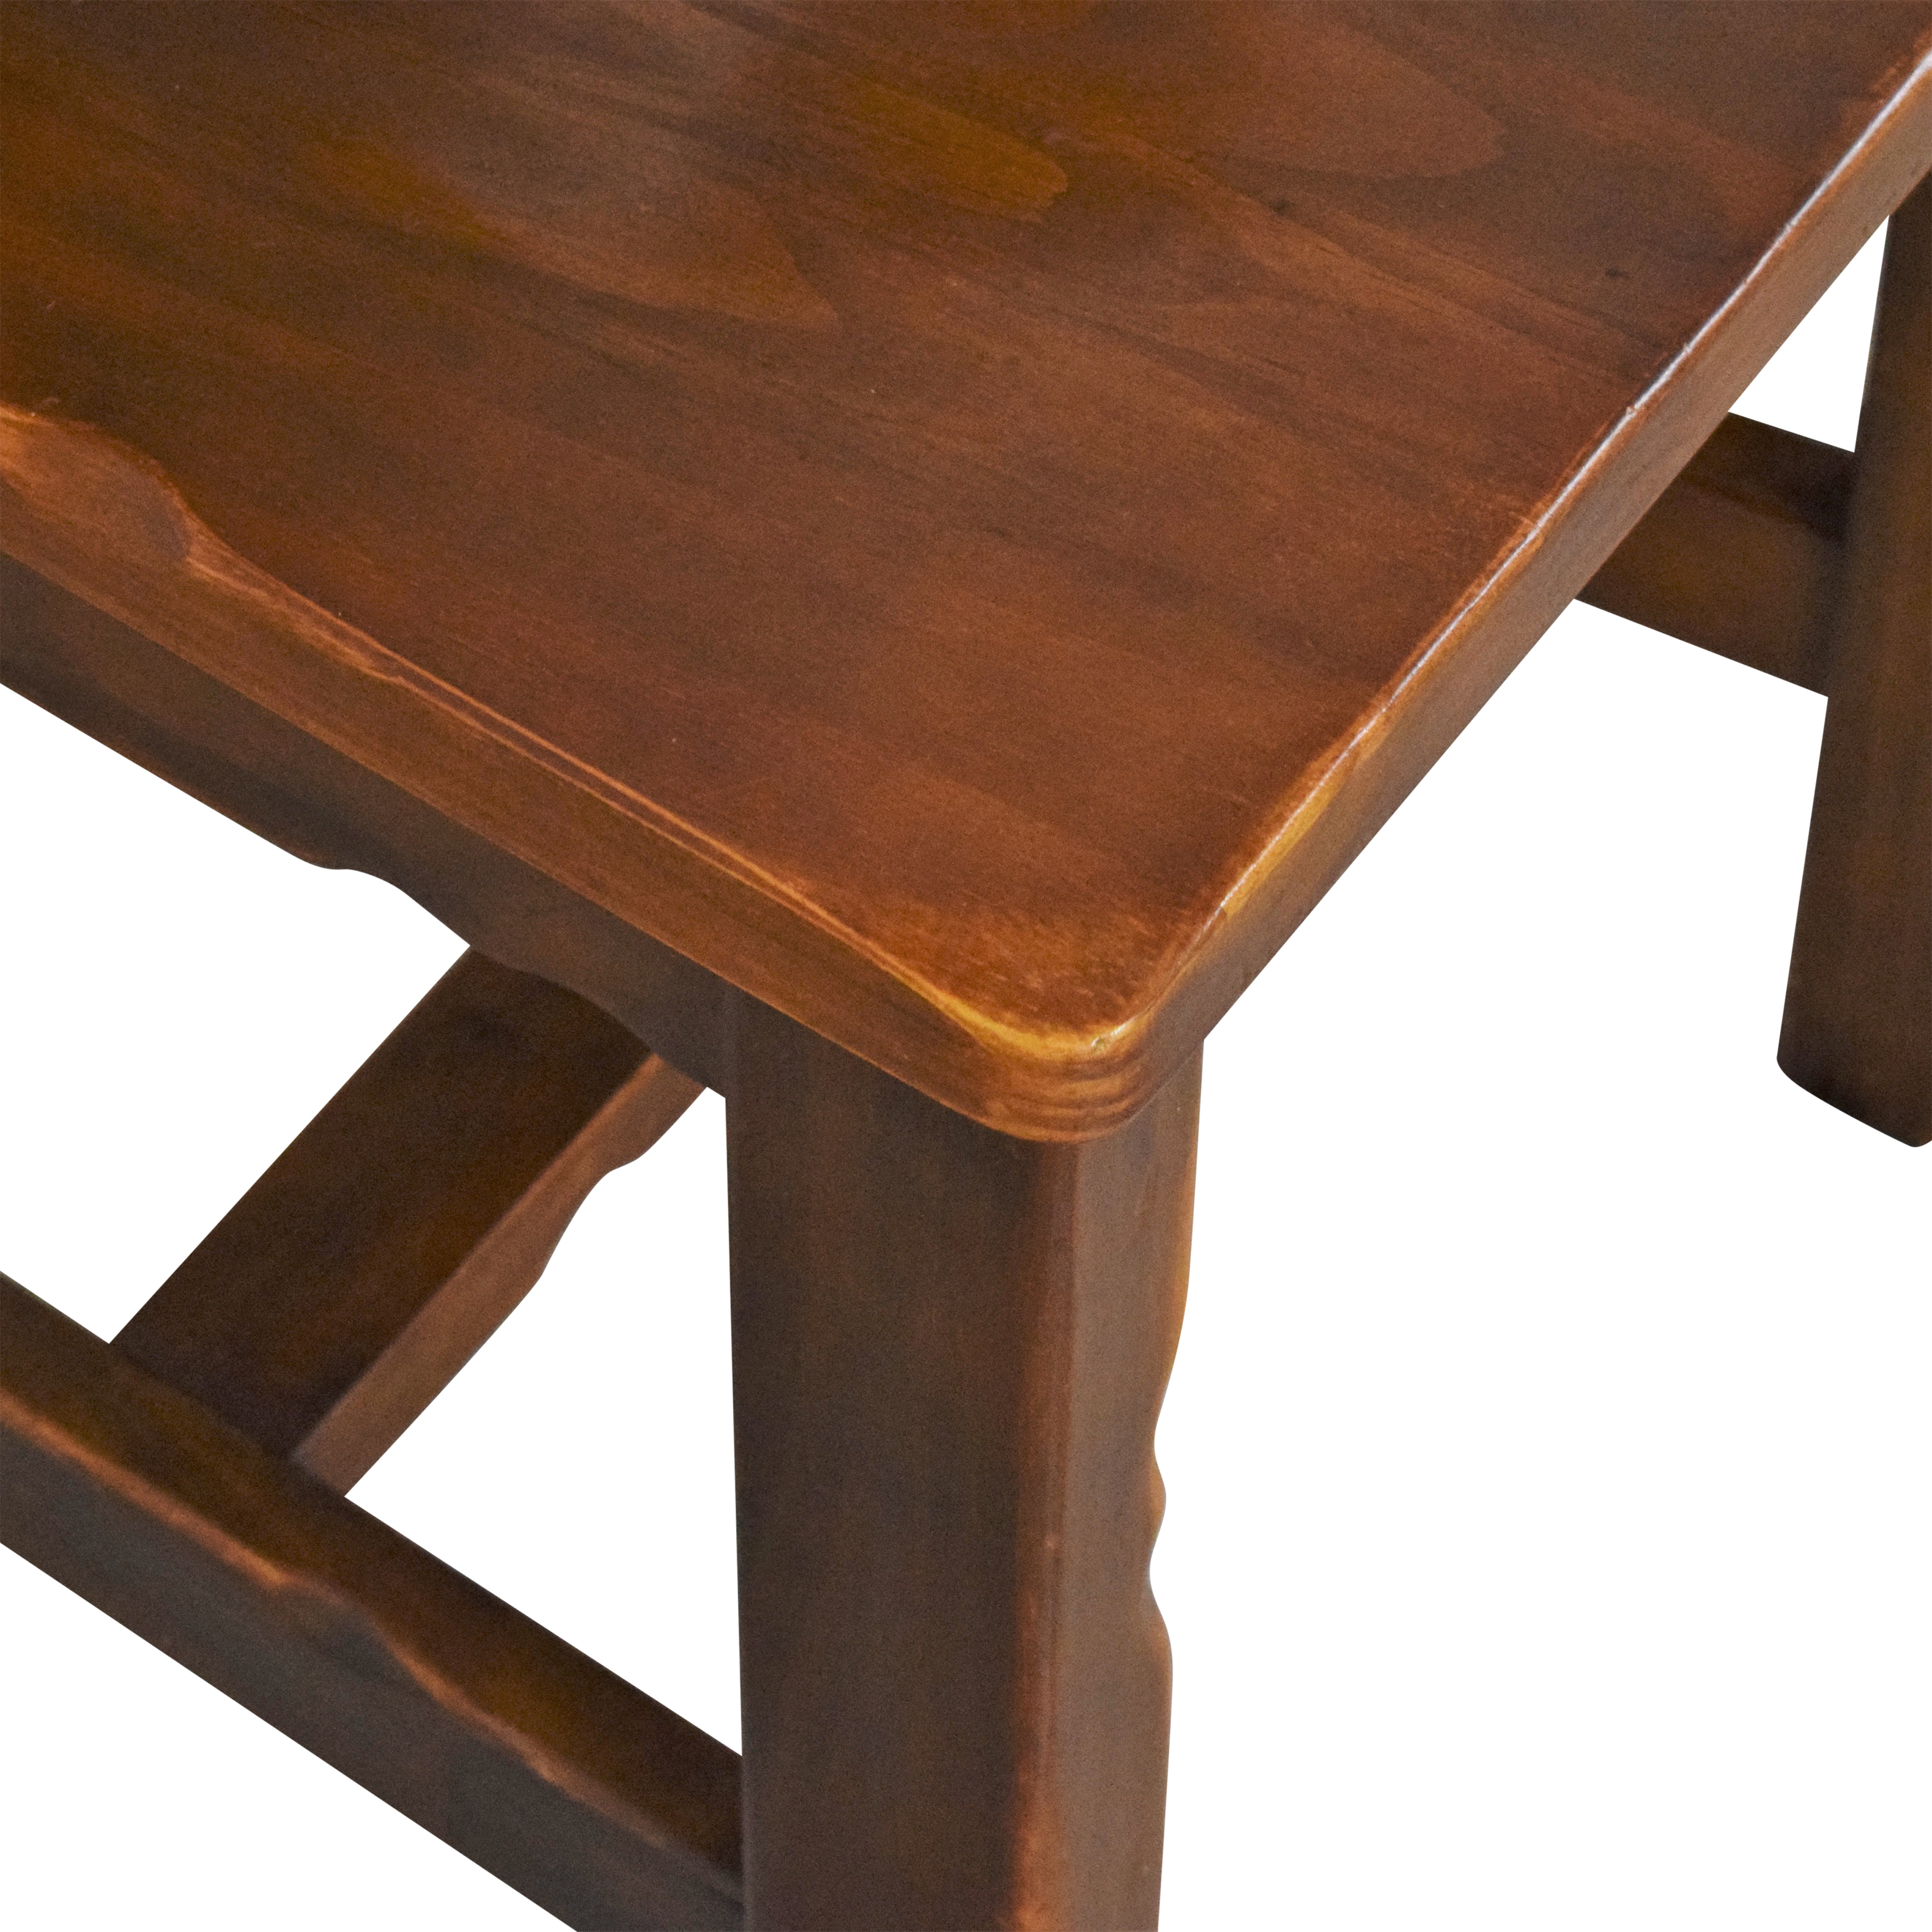 Pier 1 Pier 1 Rustic Dining Chairs Brown